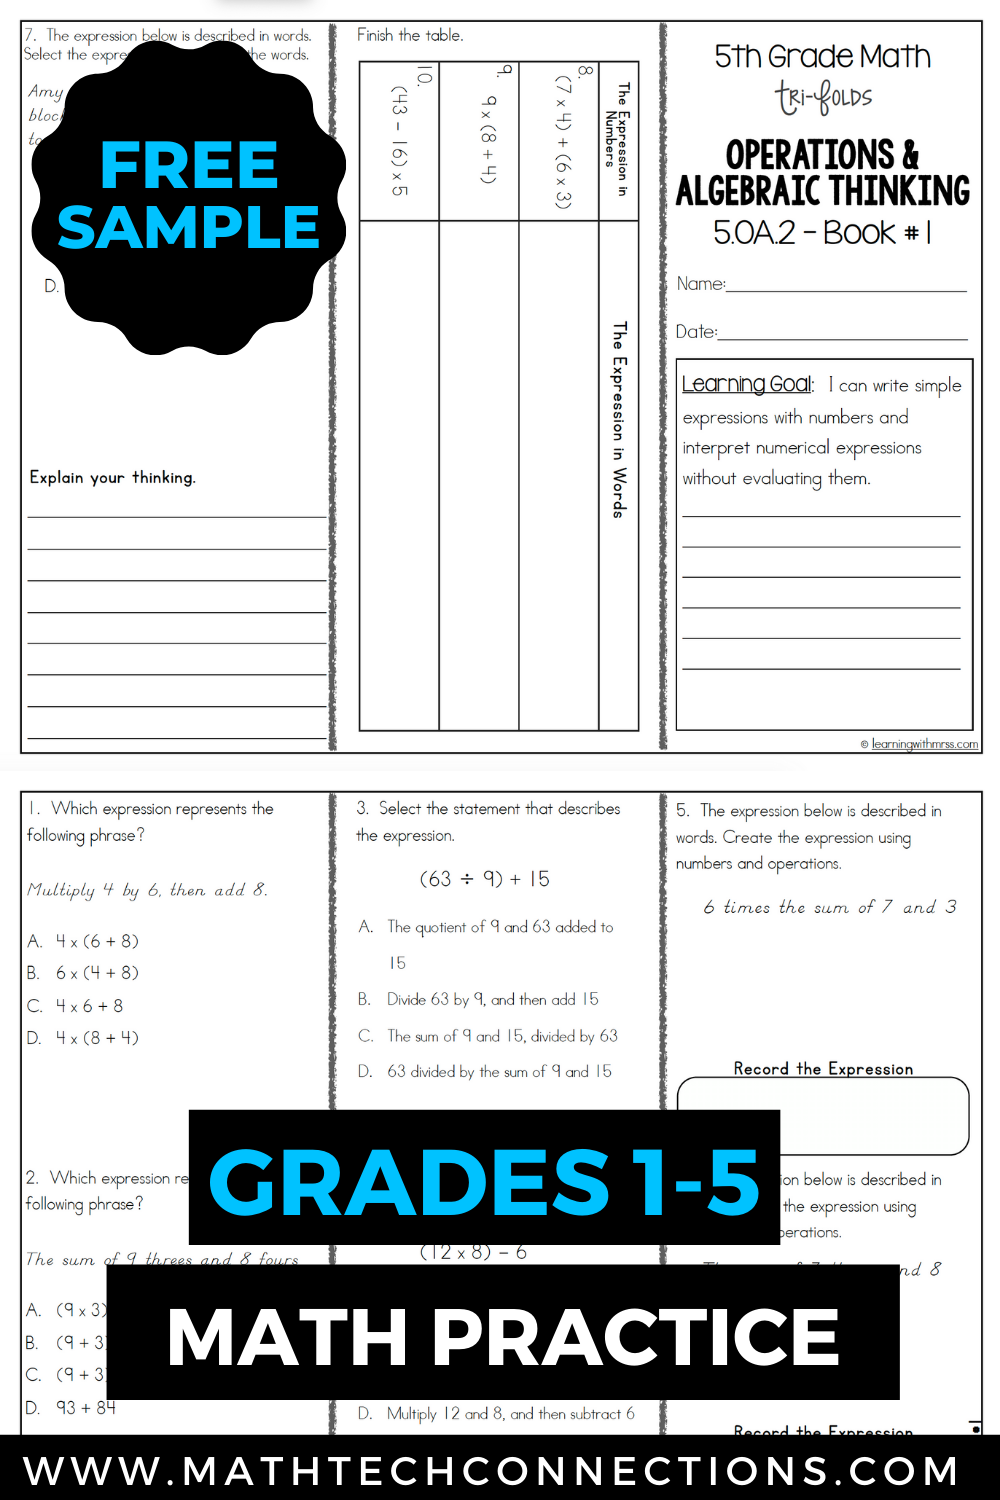 Small Group Instruction With Math Tri Folds Free Download 5th Grade Math Math Textbook Guided Math Groups [ 1500 x 1000 Pixel ]